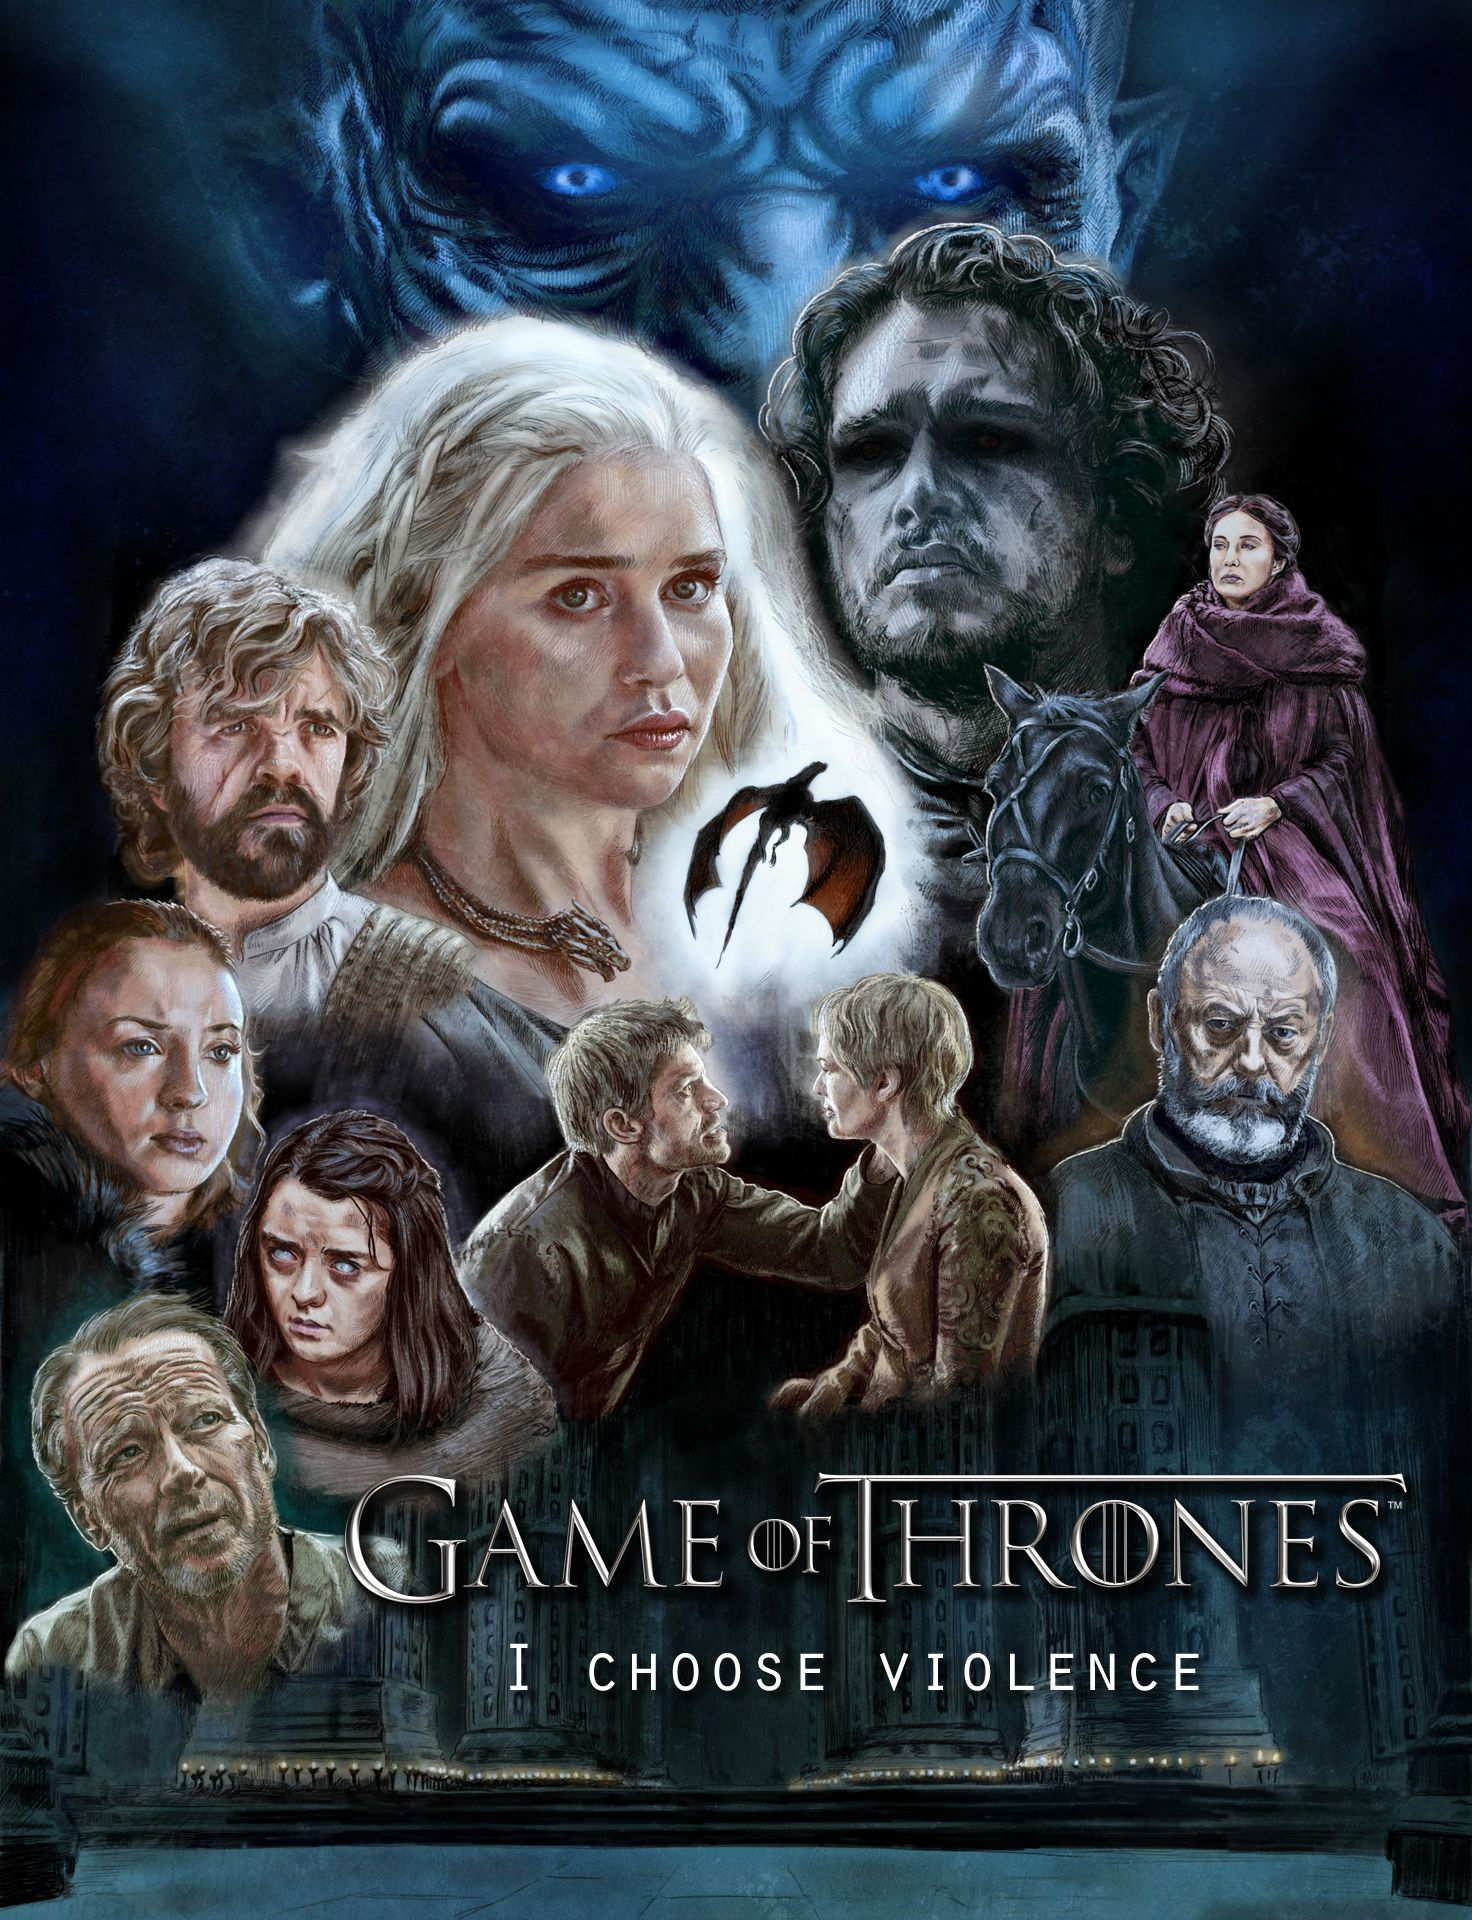 Game Of Thrones Season 6 Fan Art Poster Game Of Thrones Artwork Game Of Thrones Tv Game Of Thrones Art